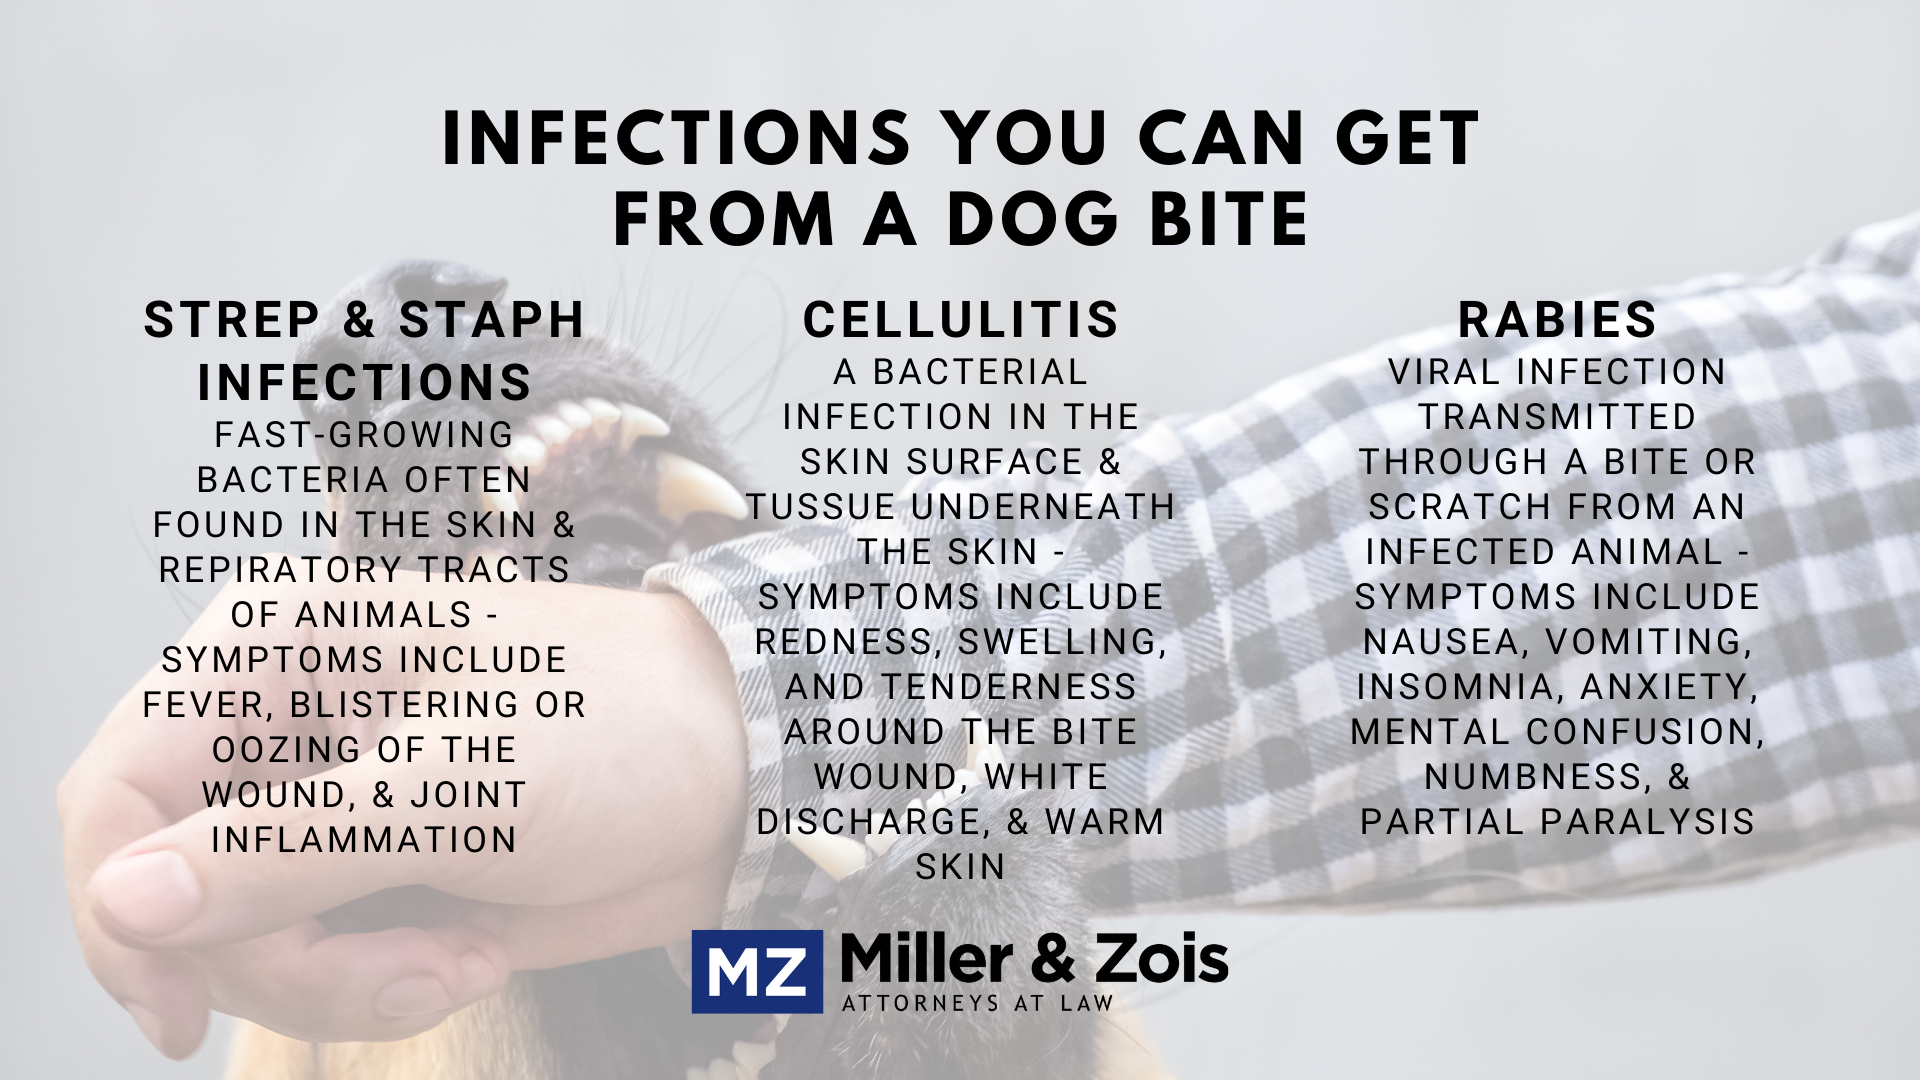 infections-you-can-get-from-a-dog-bite-1